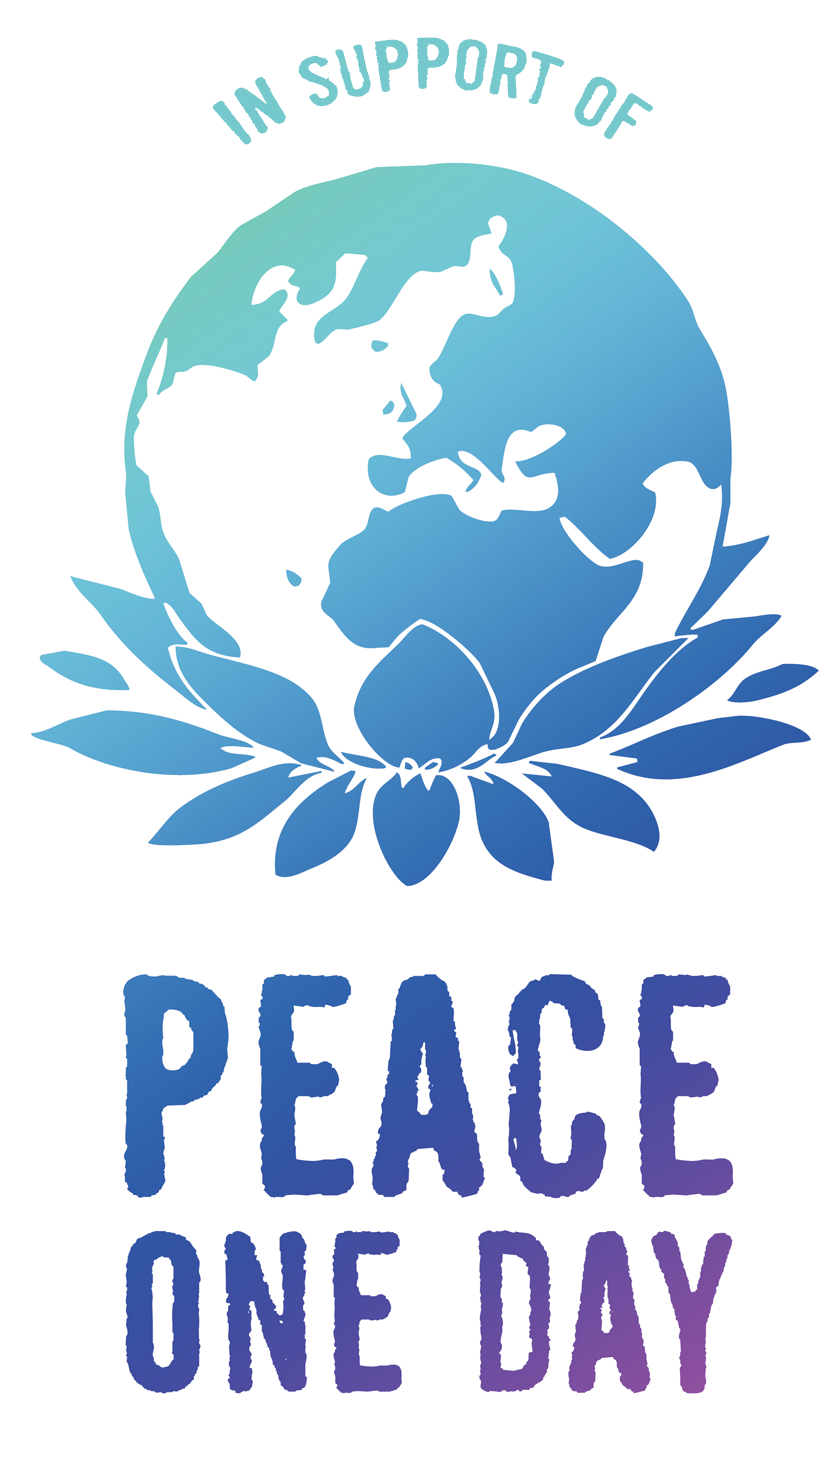 Peaceday us